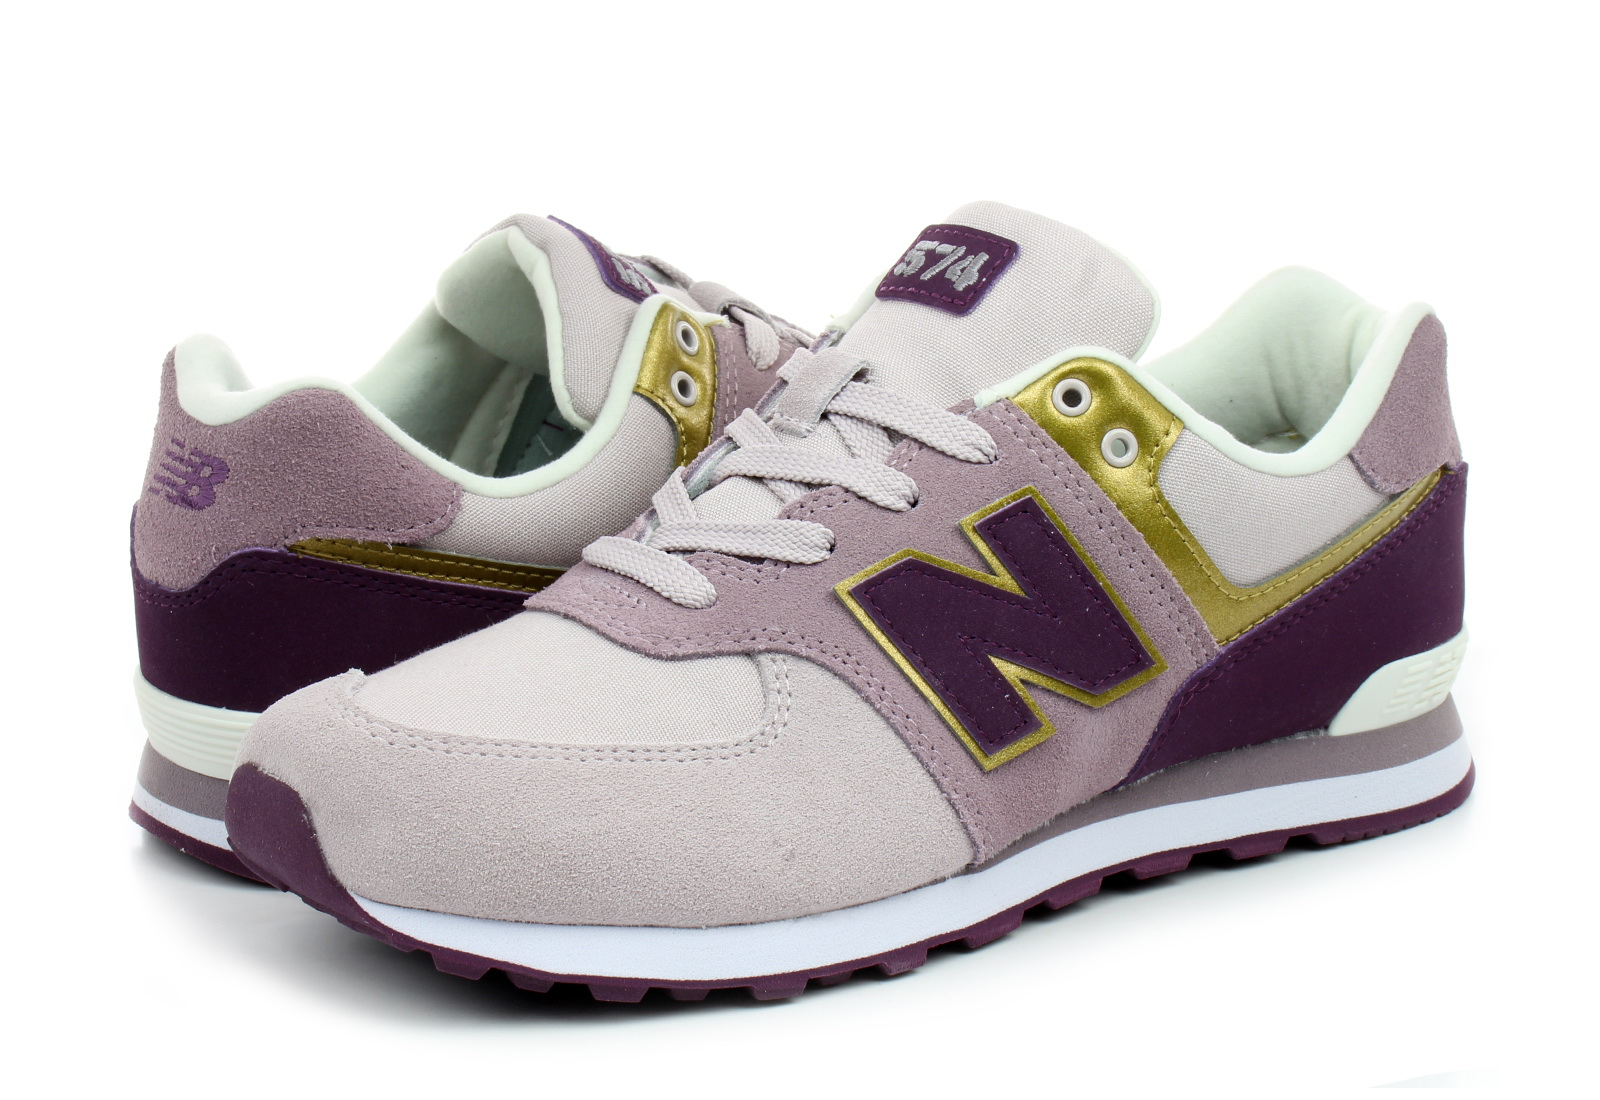 a9aa3984b5c New Balance Shoes - Gc574 - GC574MLG - Online shop for sneakers ...